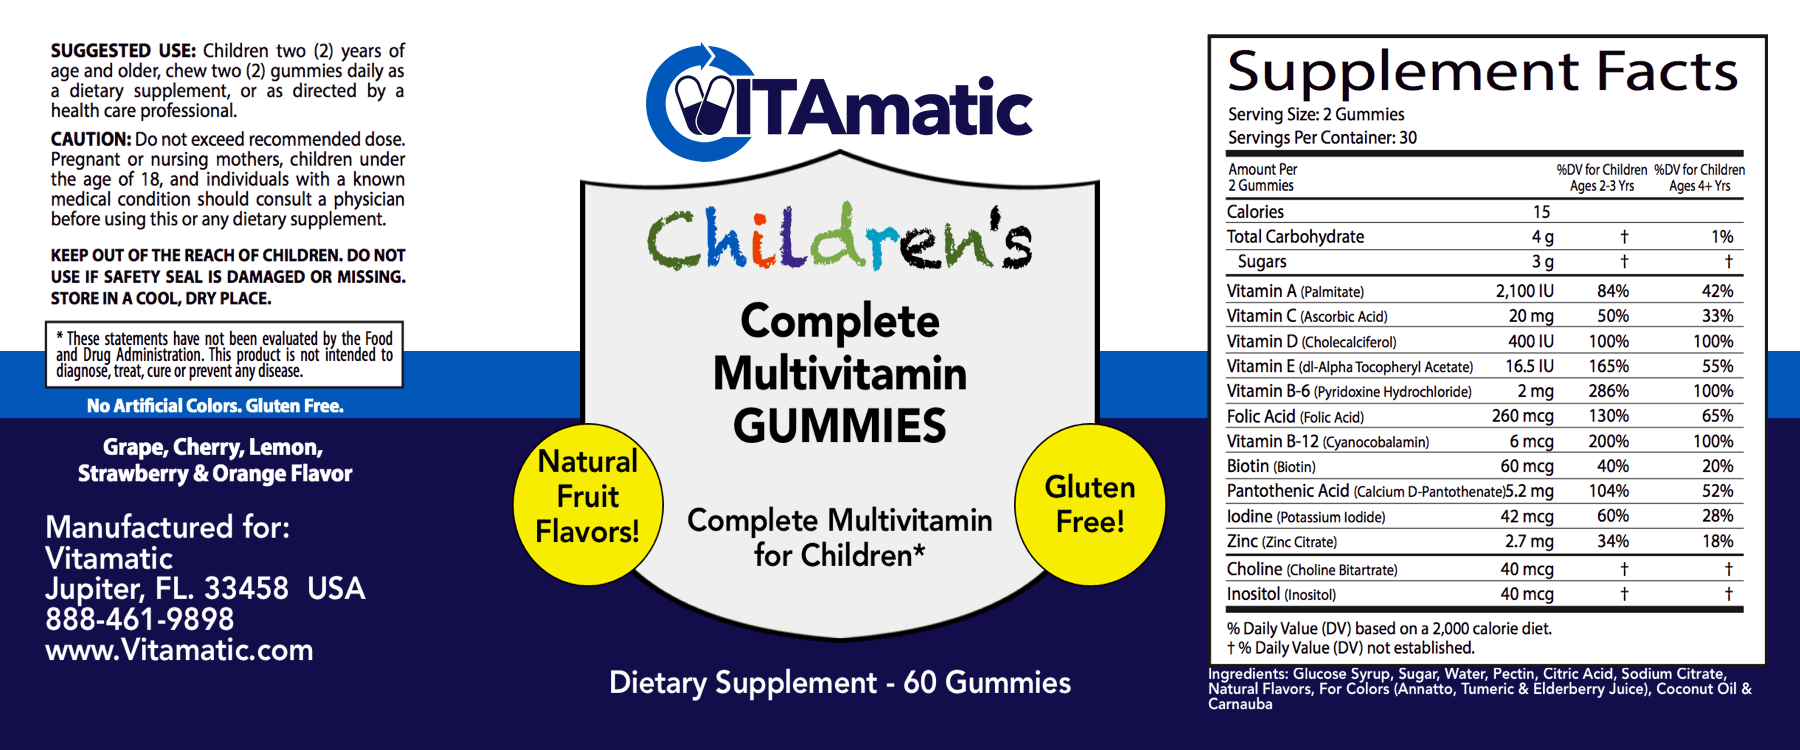 childrens_gummies_label